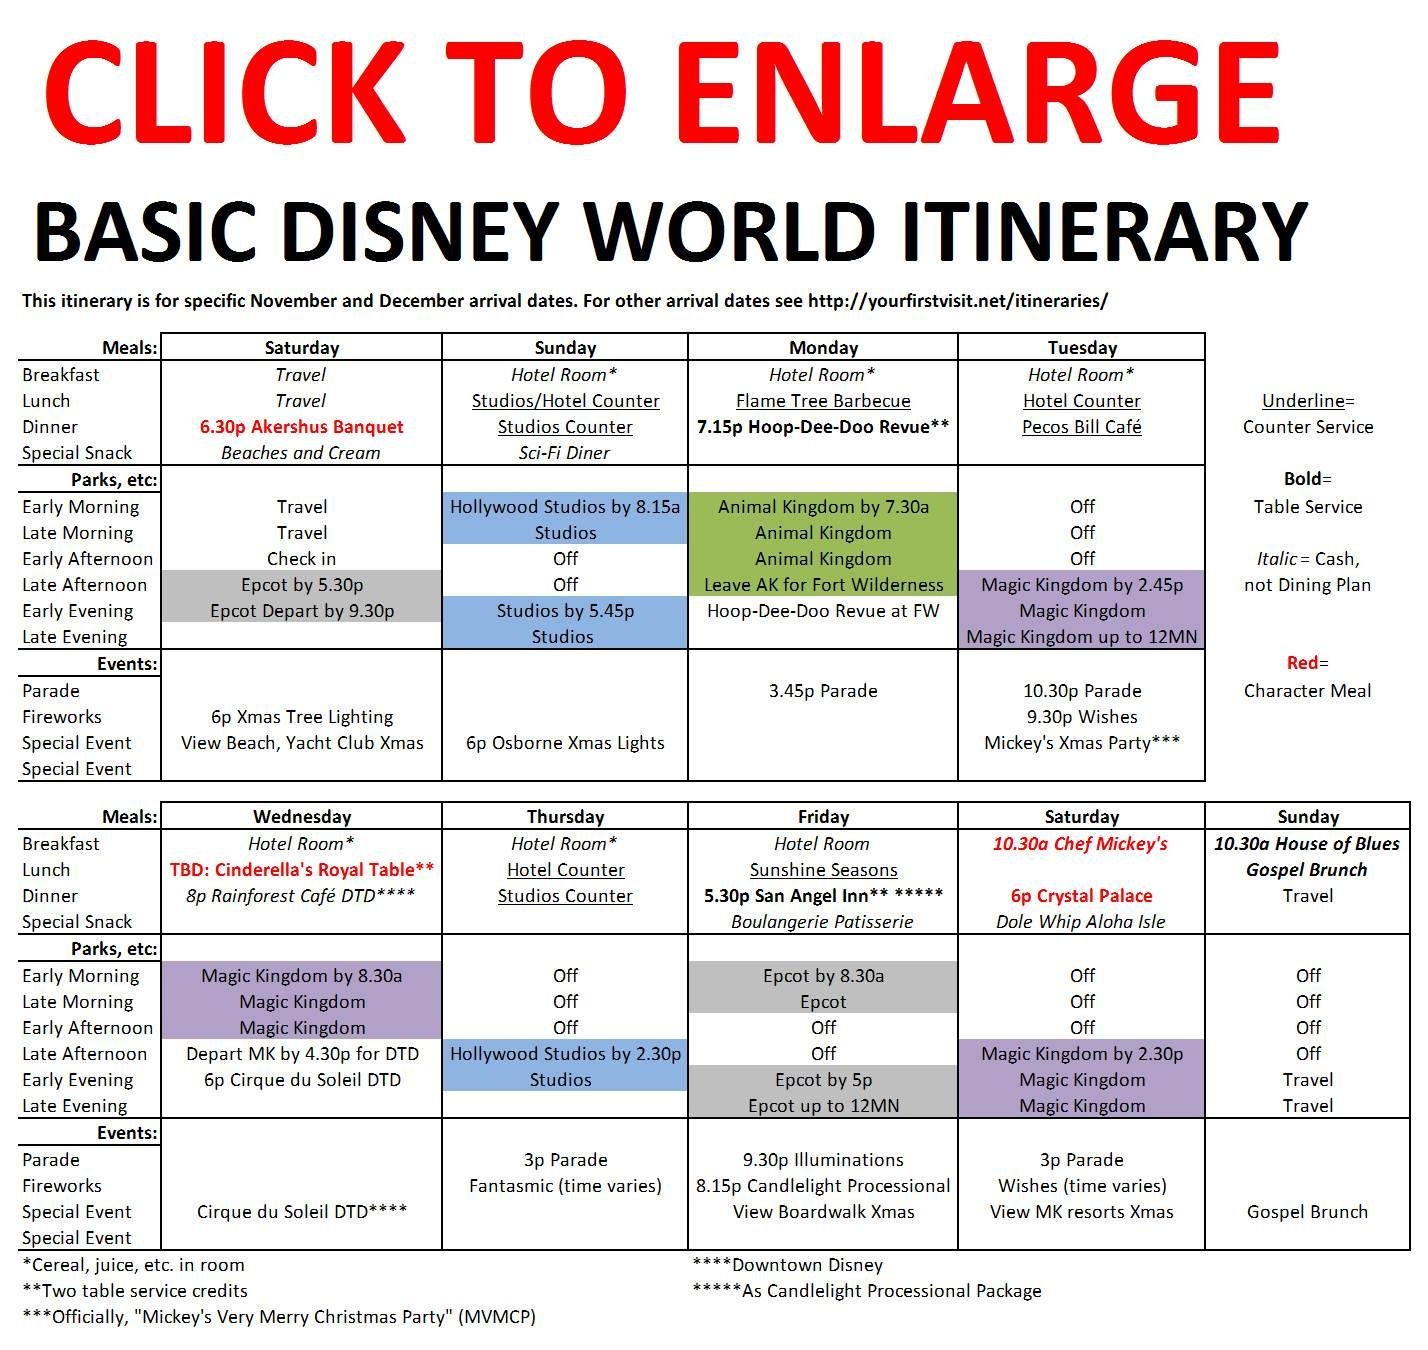 Basic 2019 December Disney World Itinerary | All Things